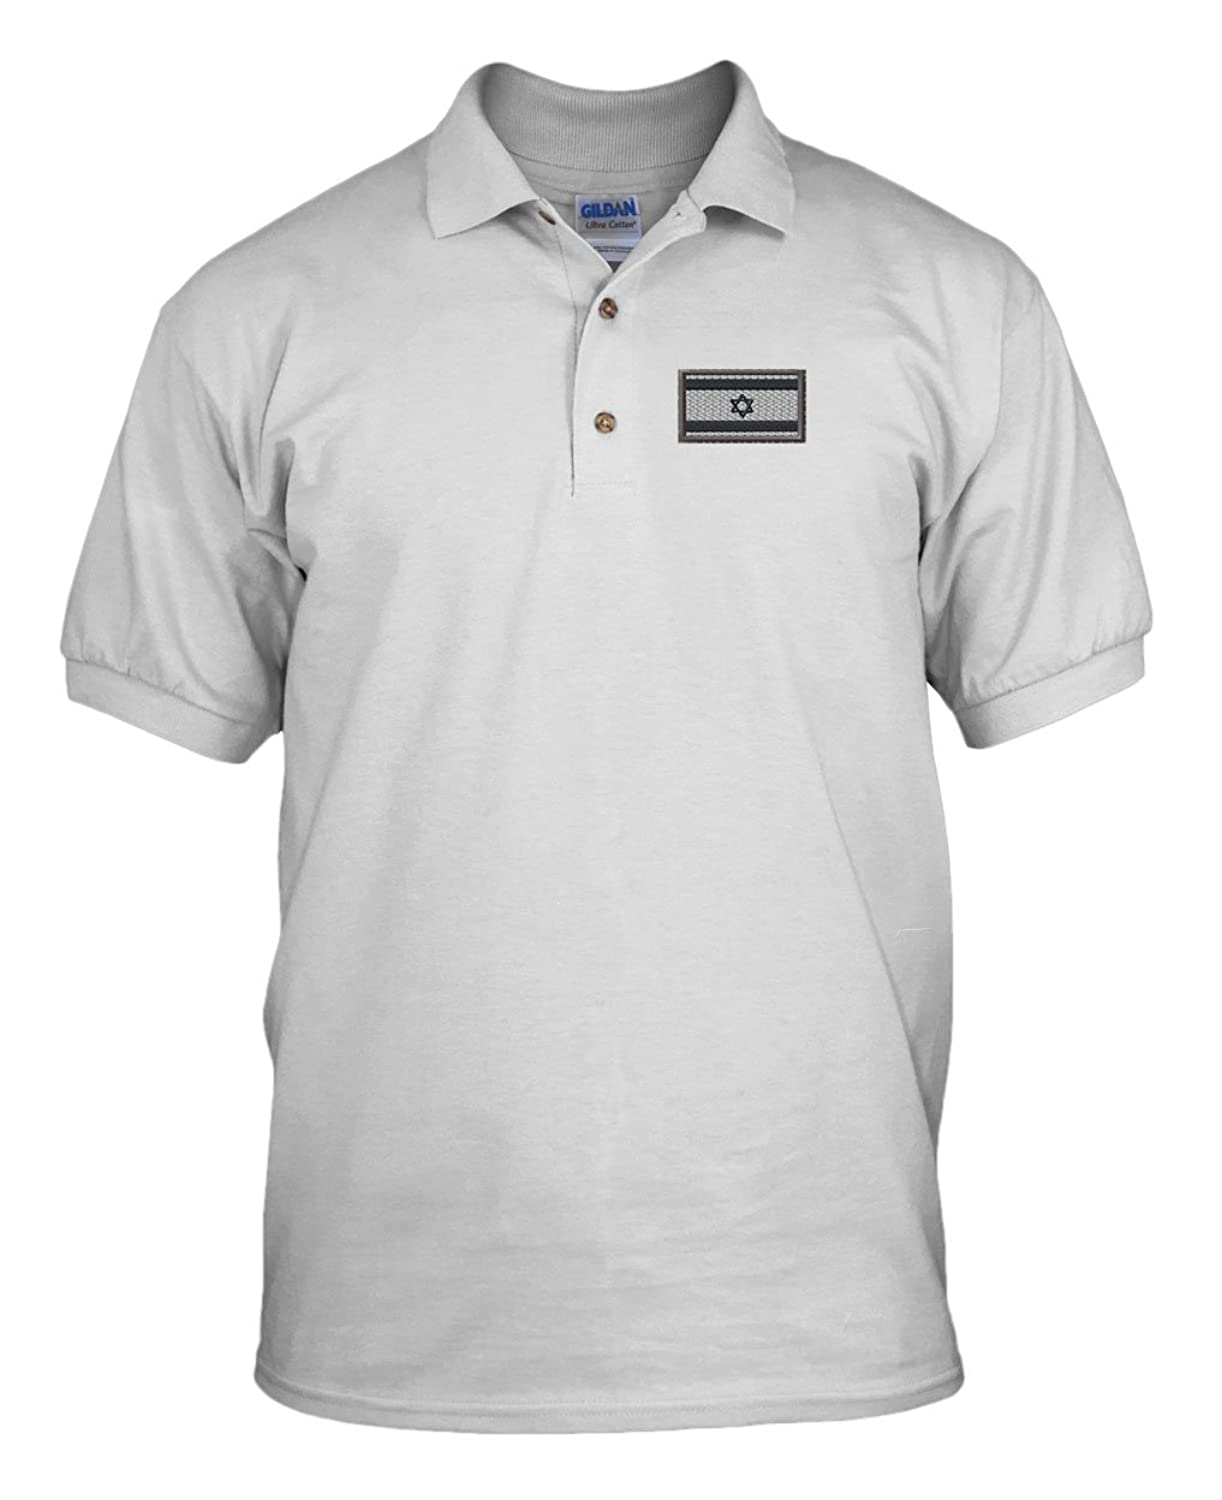 b1cf511c25843d Amazon.com  Israel White White Flag Embroidery Embroidered 100% Cotton Polo  Shirt Top White 3X-Large  Clothing